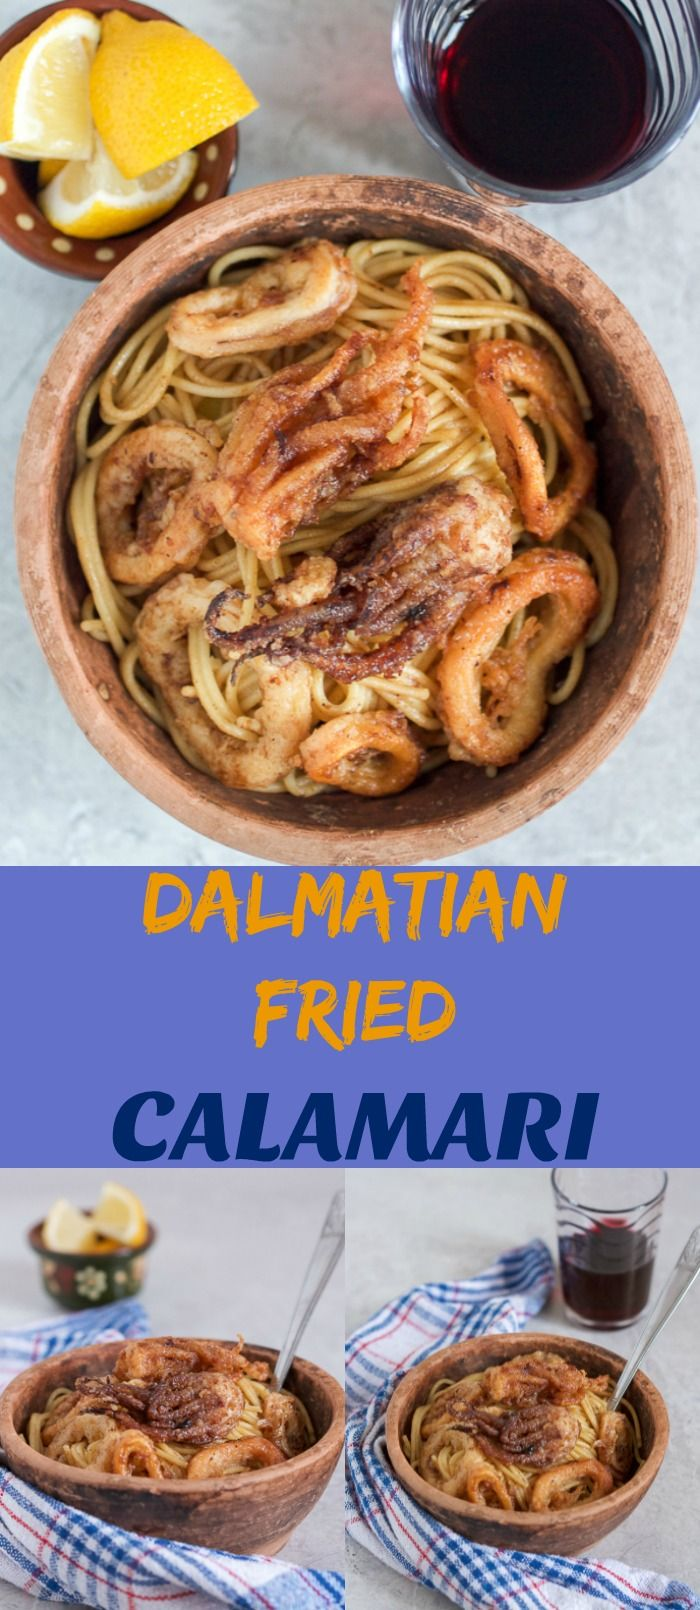 I hope today's crispy and sensational, Dalmatian fried calamari will inspire you to put some seafood on this week's menu.